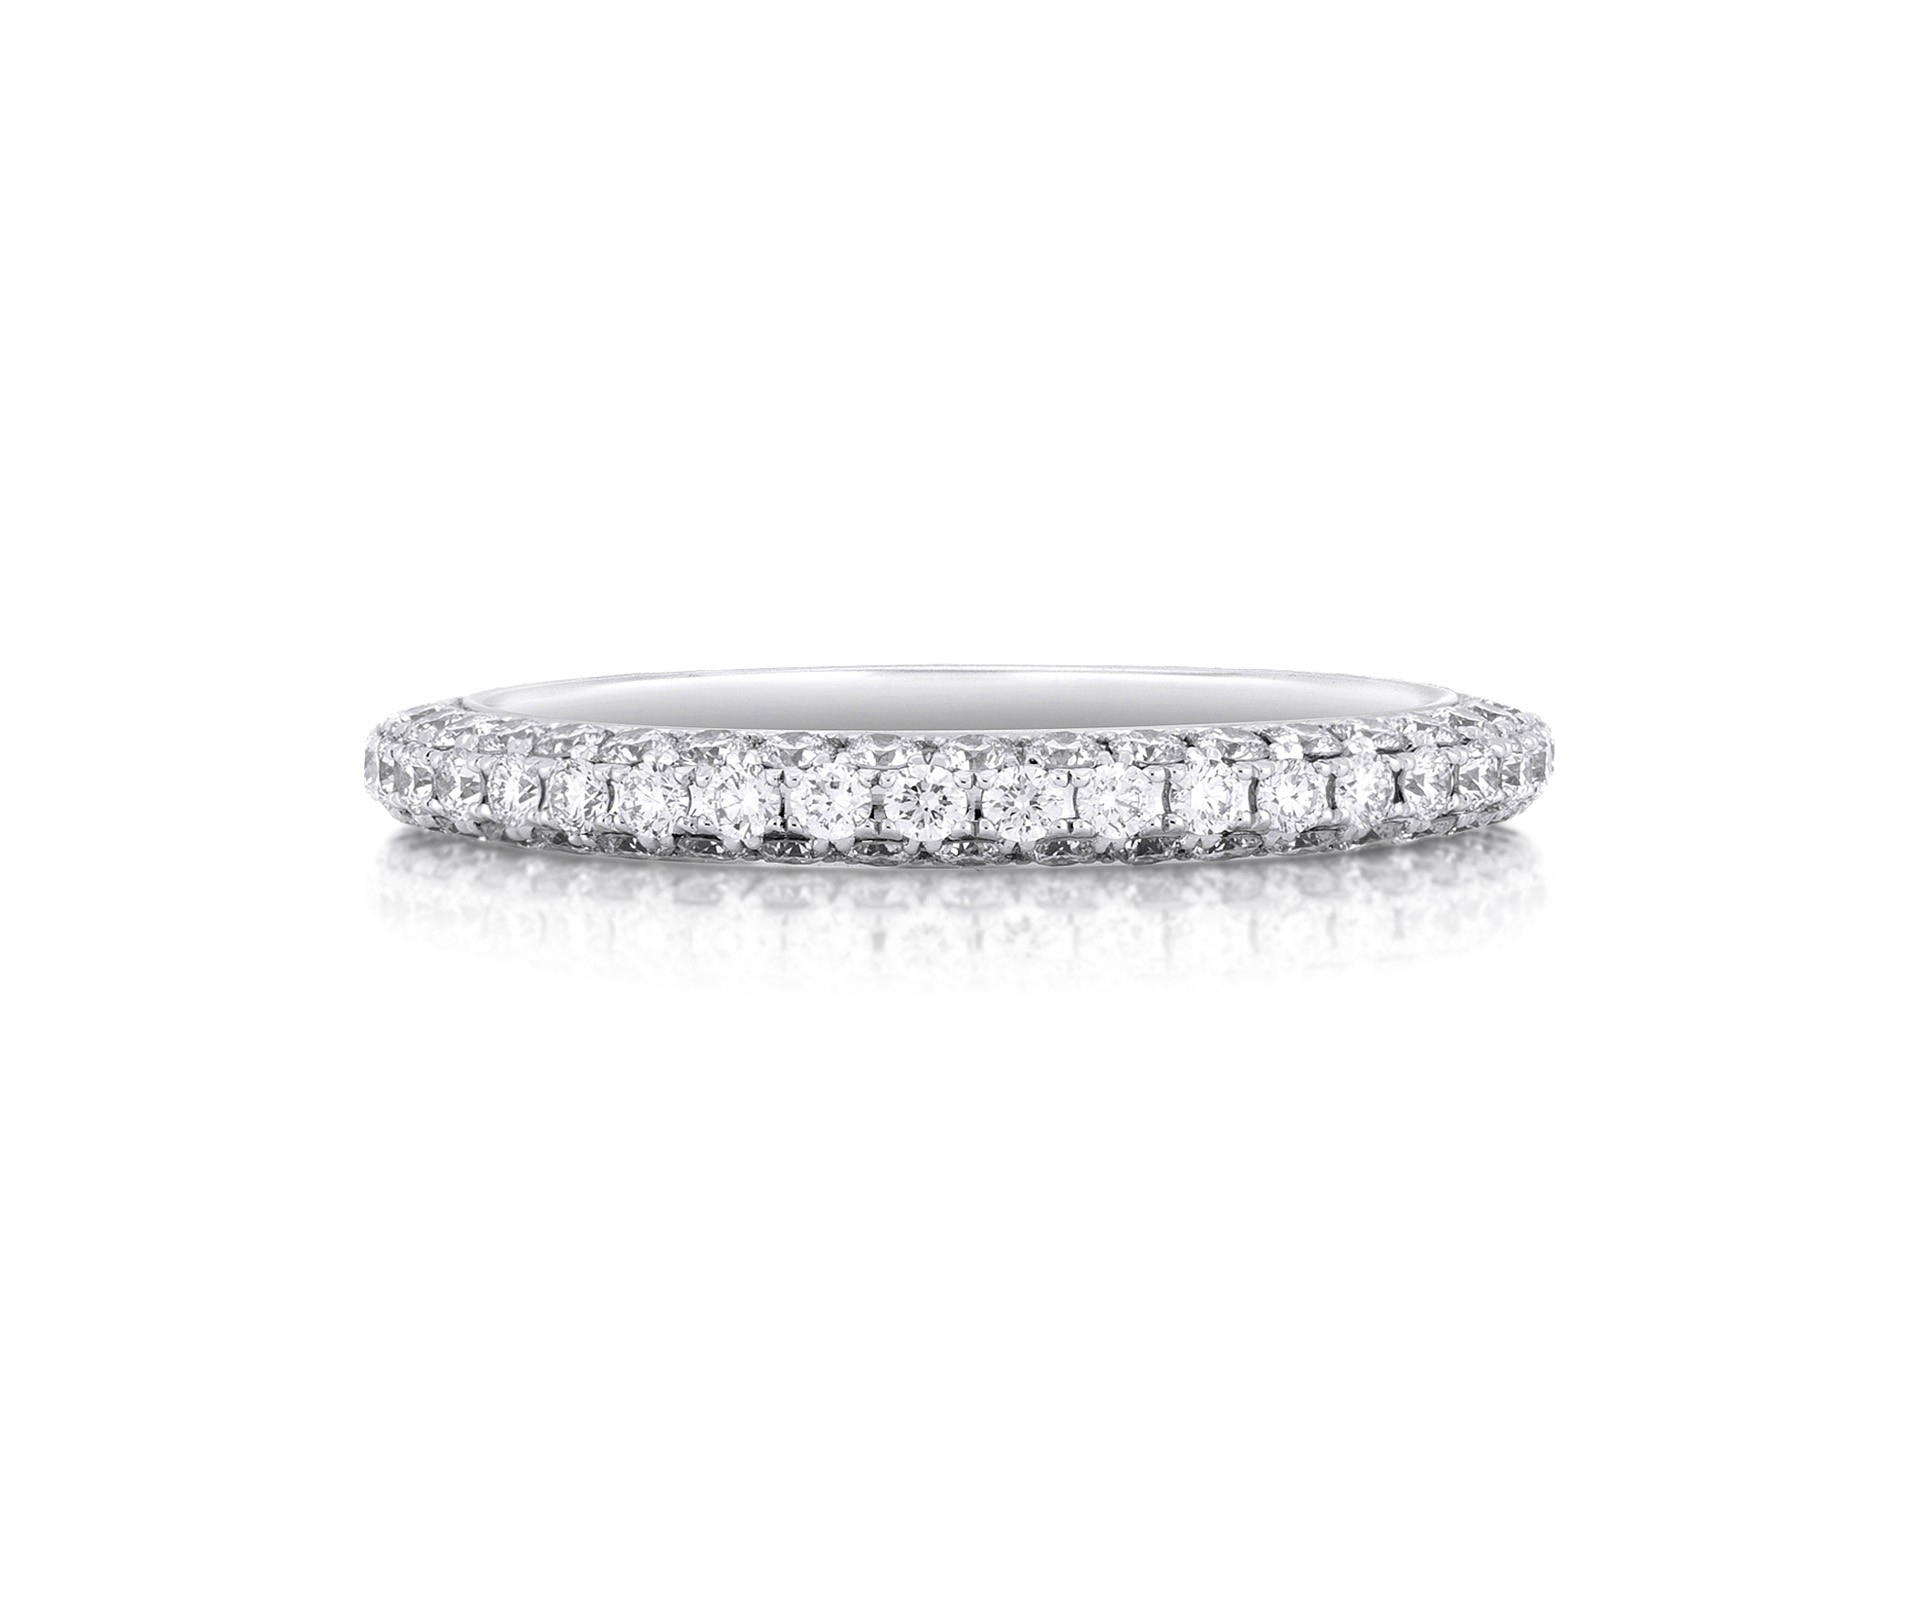 Db Darling Half Pavé Eternity Band With Regard To Newest Elegant Pavé Band Rings (View 3 of 25)